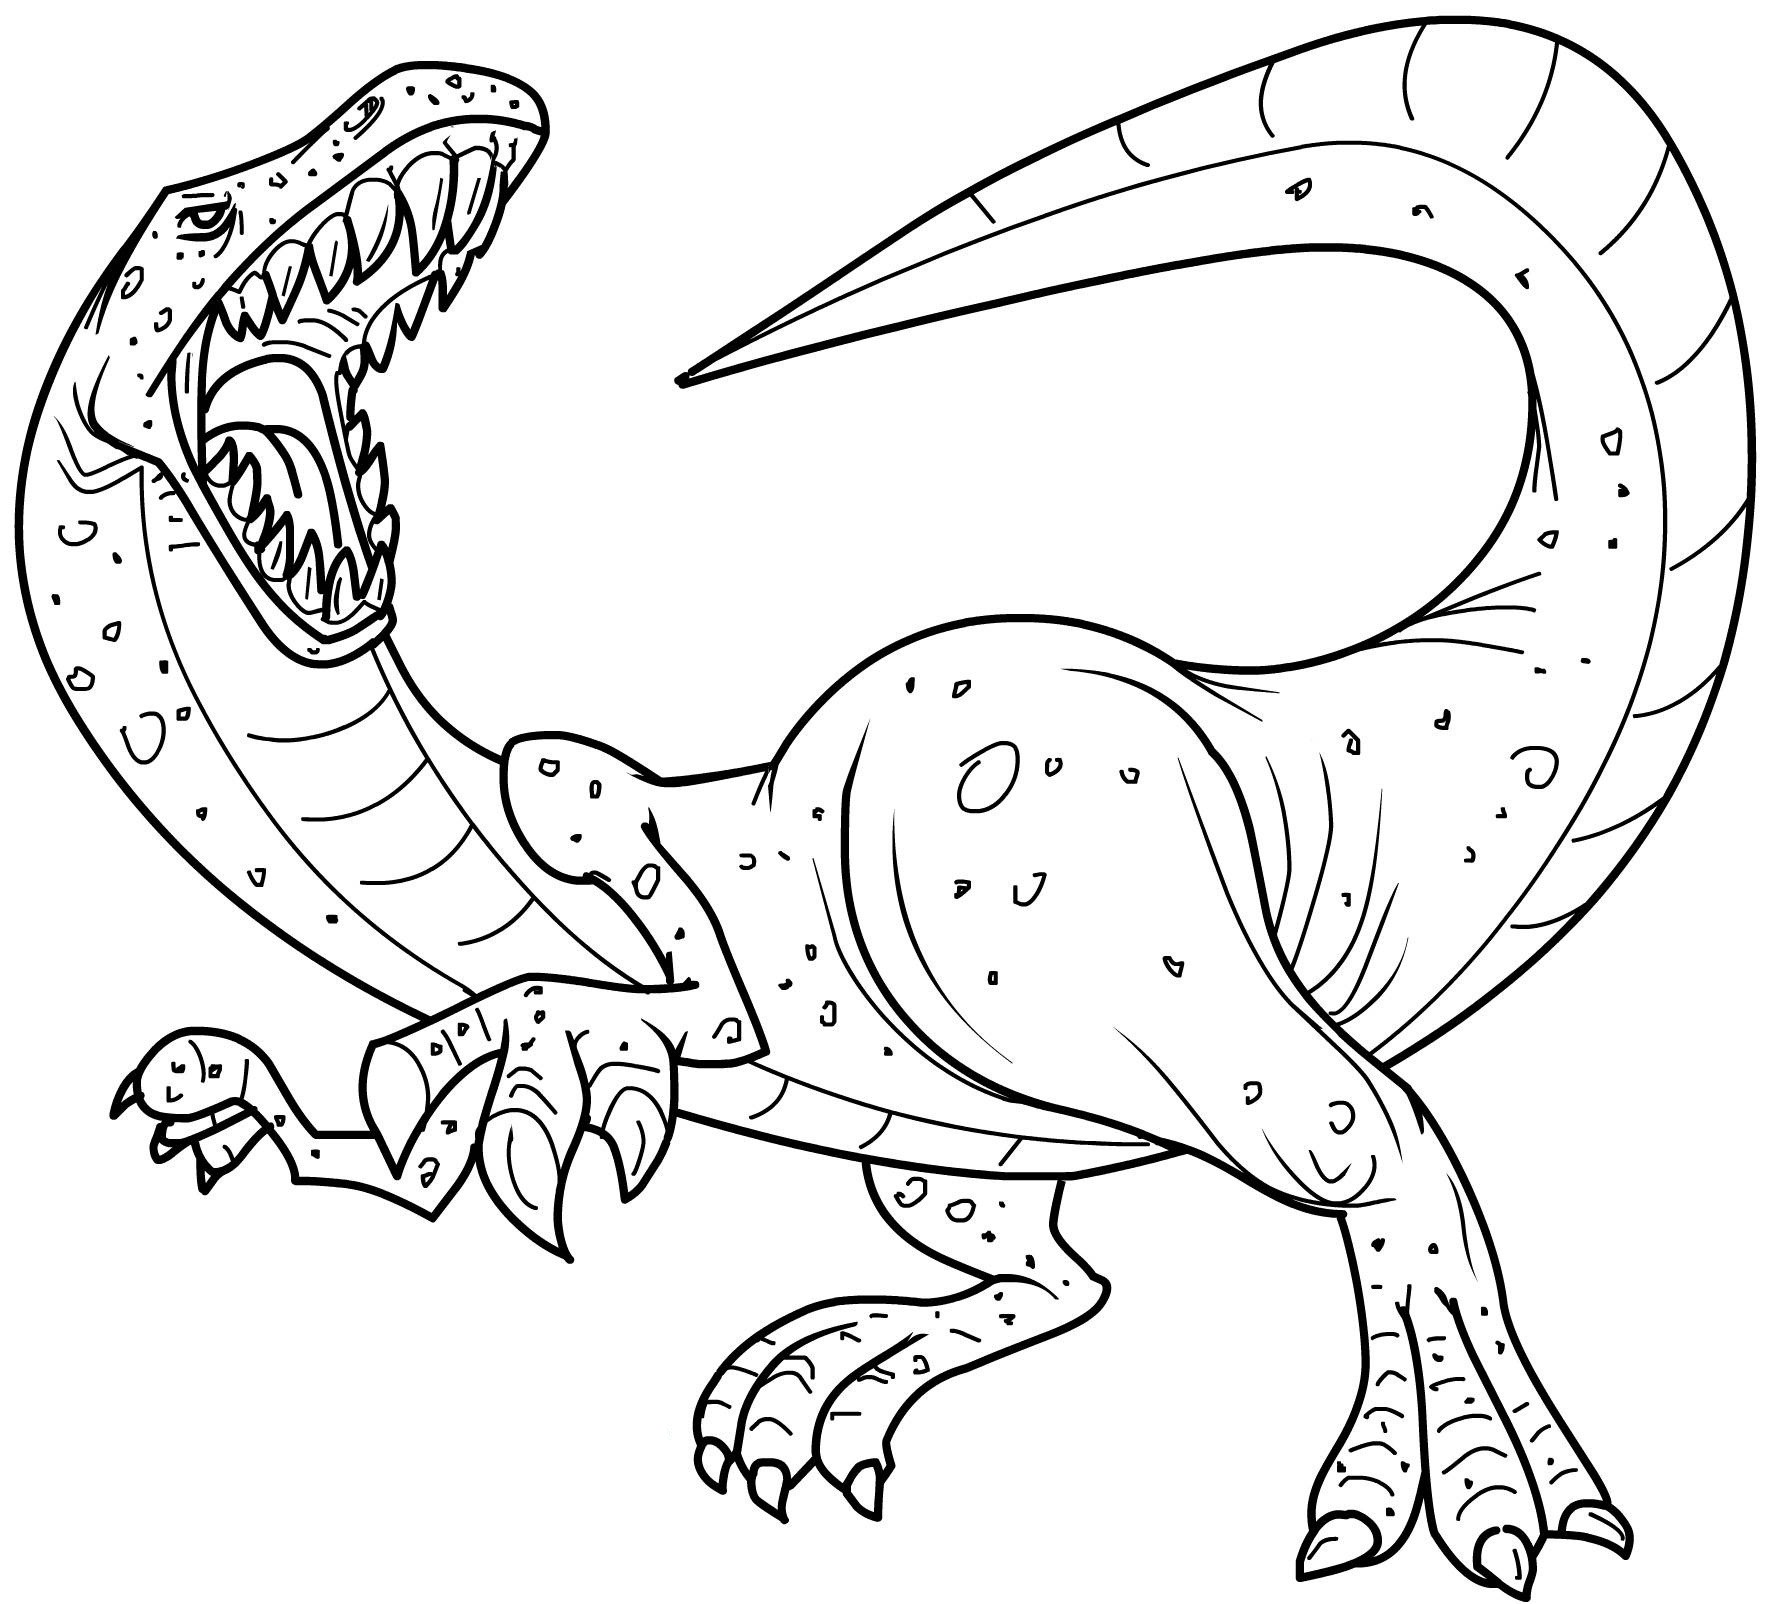 Printable coloring pages dinosaurs - Dinosaurs Coloring Pages Free Printables